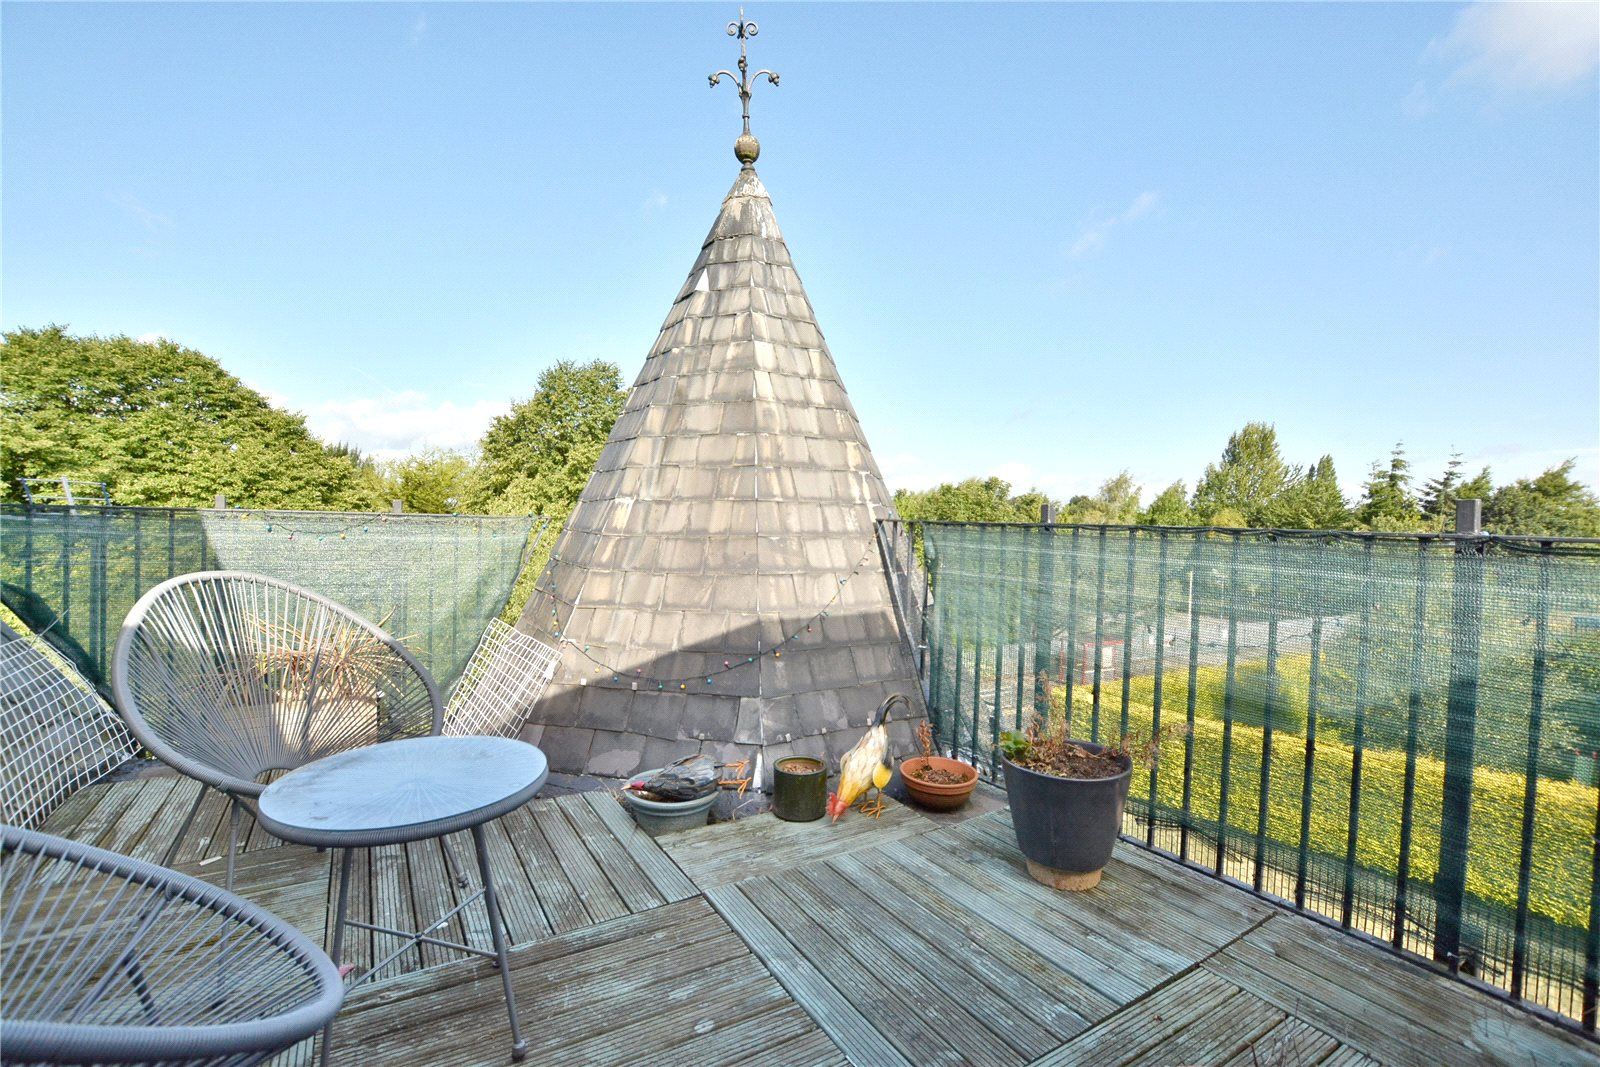 Property for sale in Oakwood, roof terrace